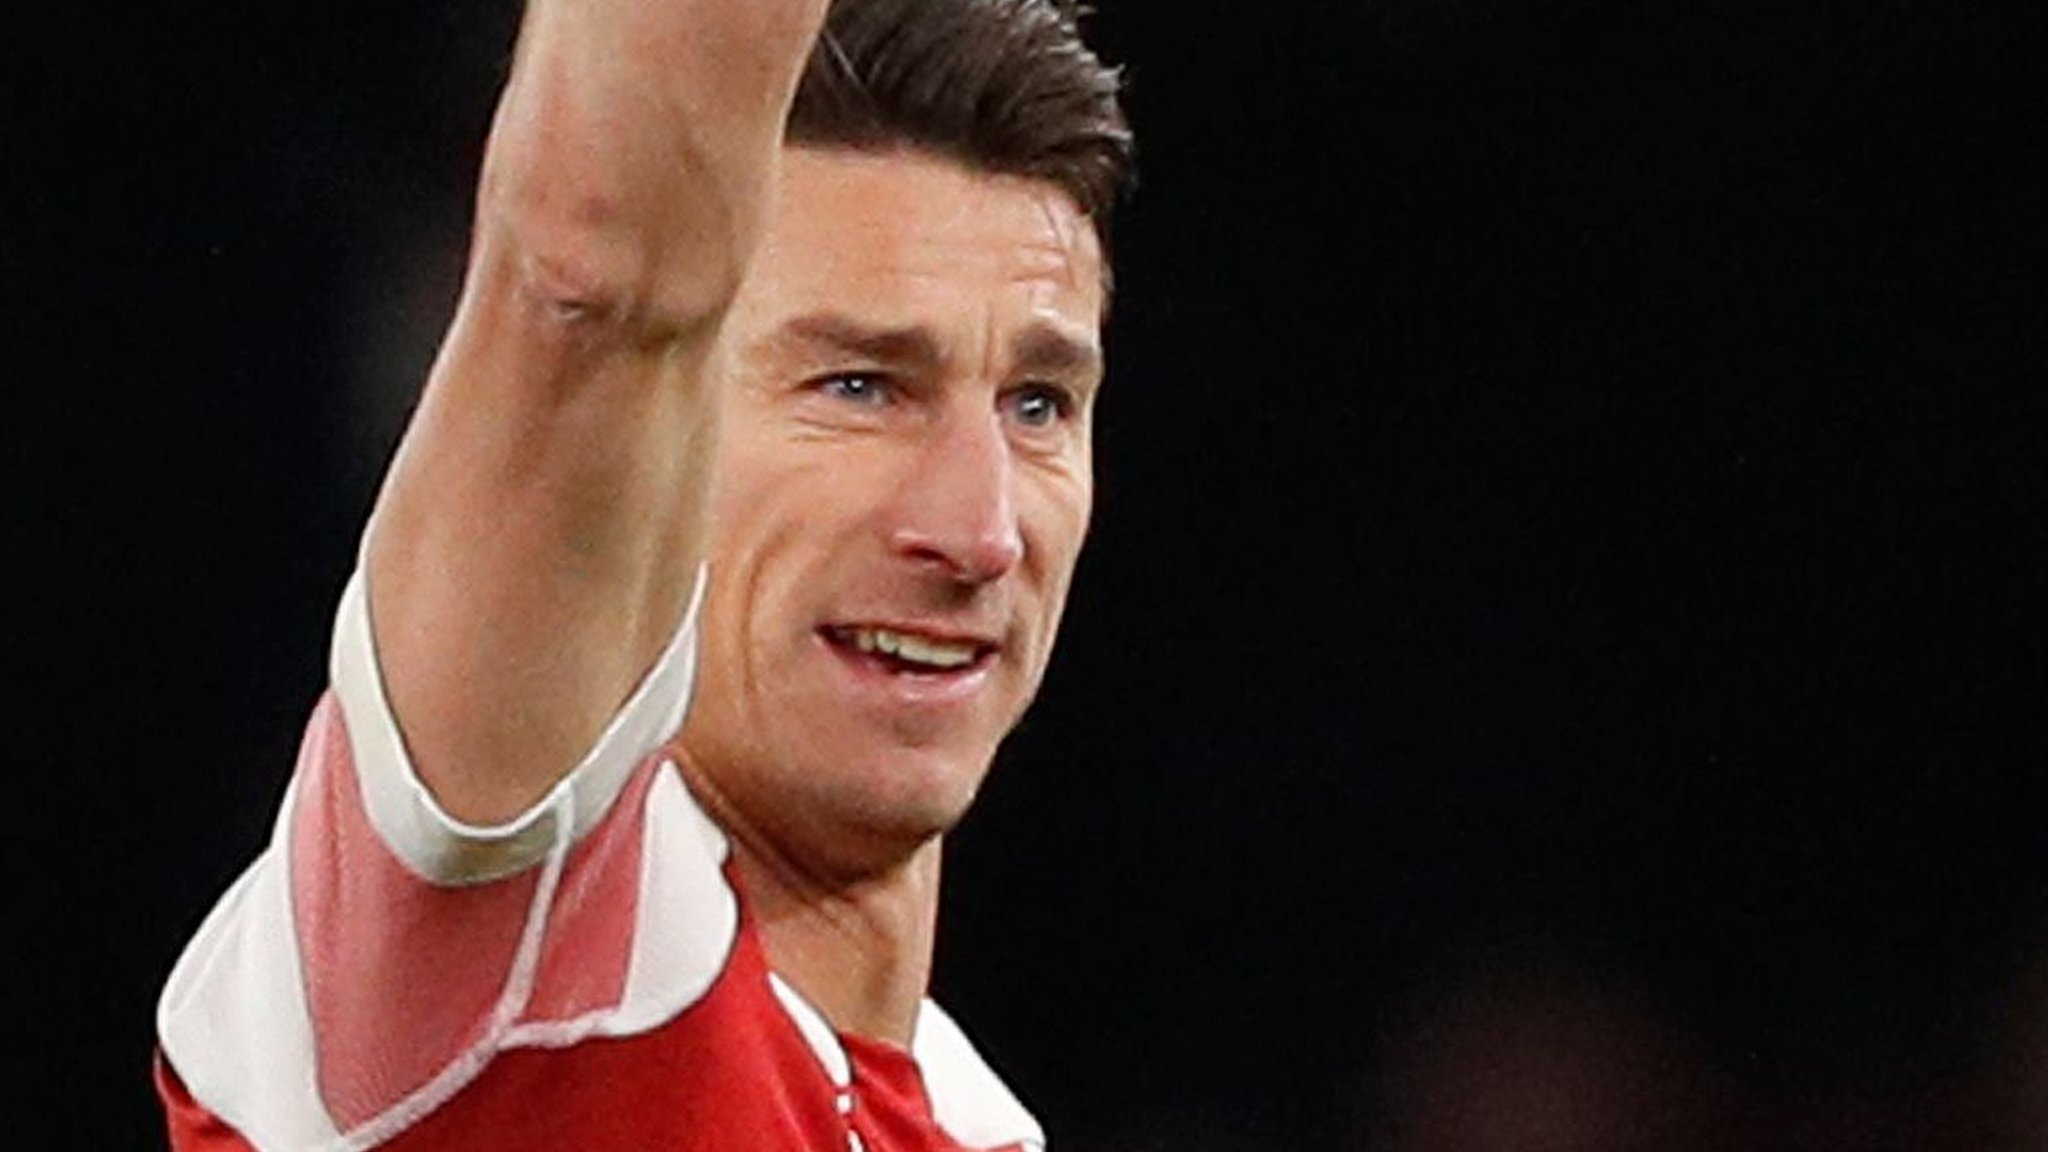 Arsenal: Europa League return for Laurent Koscielny is 'start of new chapter'